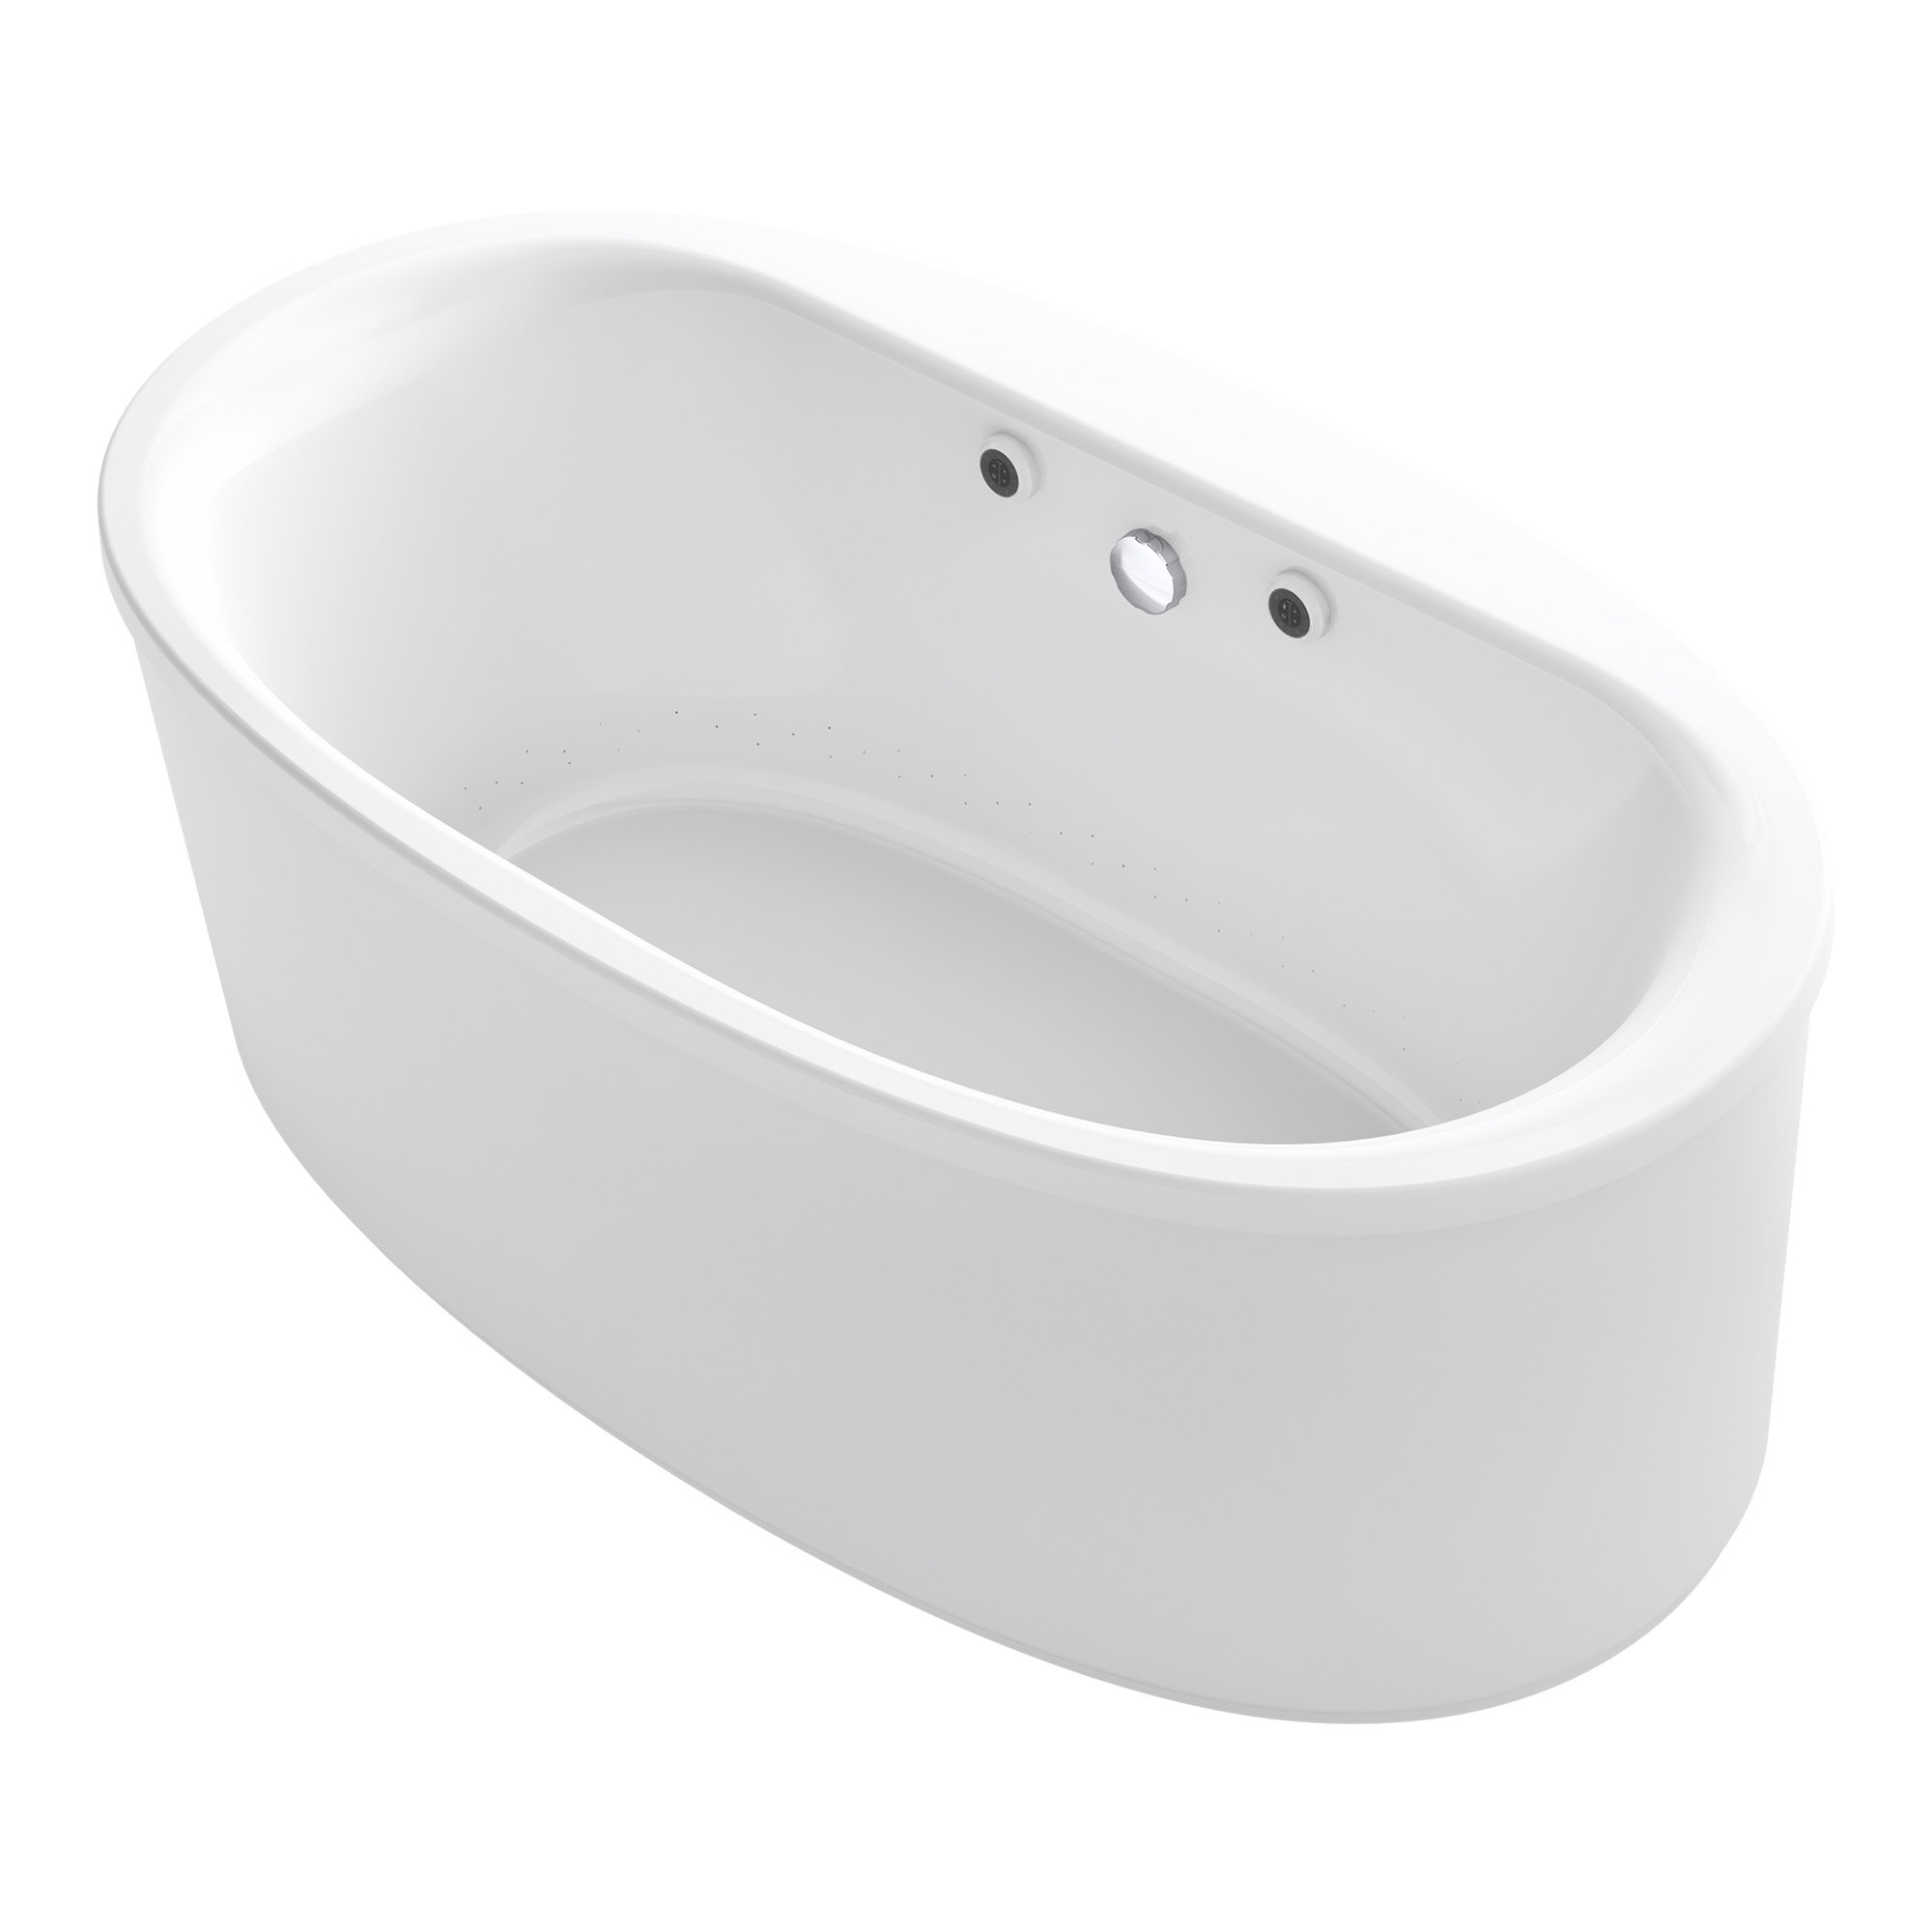 KOHLER K-1966-GW-0 Sunstruck 66'' x 36'' Oval Freestanding BubbleMassage Air Bath with Bask Heated Surface and Straight Shroud, White